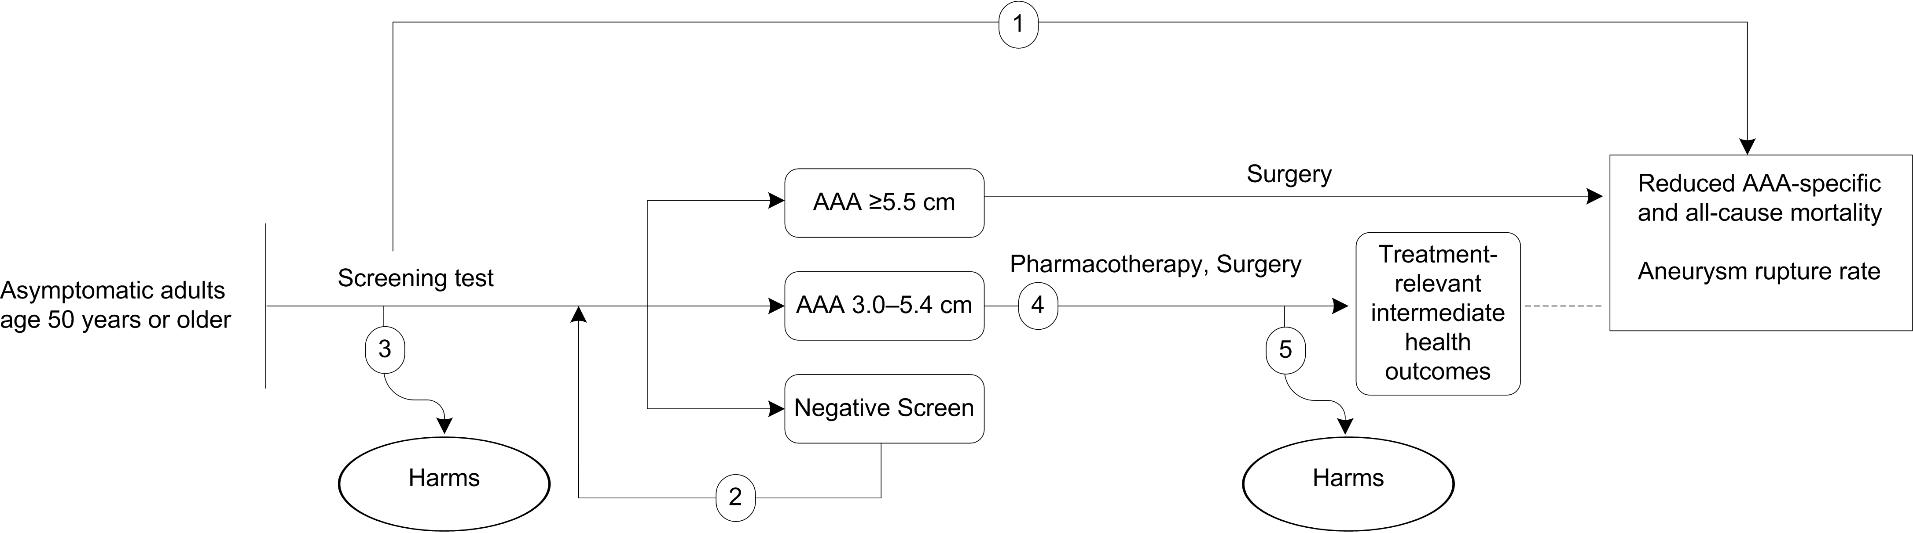 Figure 1 is the analytic framework that depicts the five Key Questions to be addressed in the systematic review. The figure illustrates how screening for abdominal aortic aneurysm (AAA) may result in improved health outcomes, including reducing AAA-specific and all-cause mortality, as well as aneurysm rupture rate (KQ1). Additionally, the figure depicts the effects of rescreening for AAA on health outcomes or AAA incidence in a previously screened, asymptomatic population (KQ2), as well as harms associated with one-time and repeated screening (KQ3). Further, the figure illustrates how treating small AAAs (i.e., aortic diameter of 3.0 to 5.4 cm) with pharmacotherapy or surgery effects treatment-relevant intermediate health outcomes (KQ4) and what harms are associated with these treatments (KQ5).